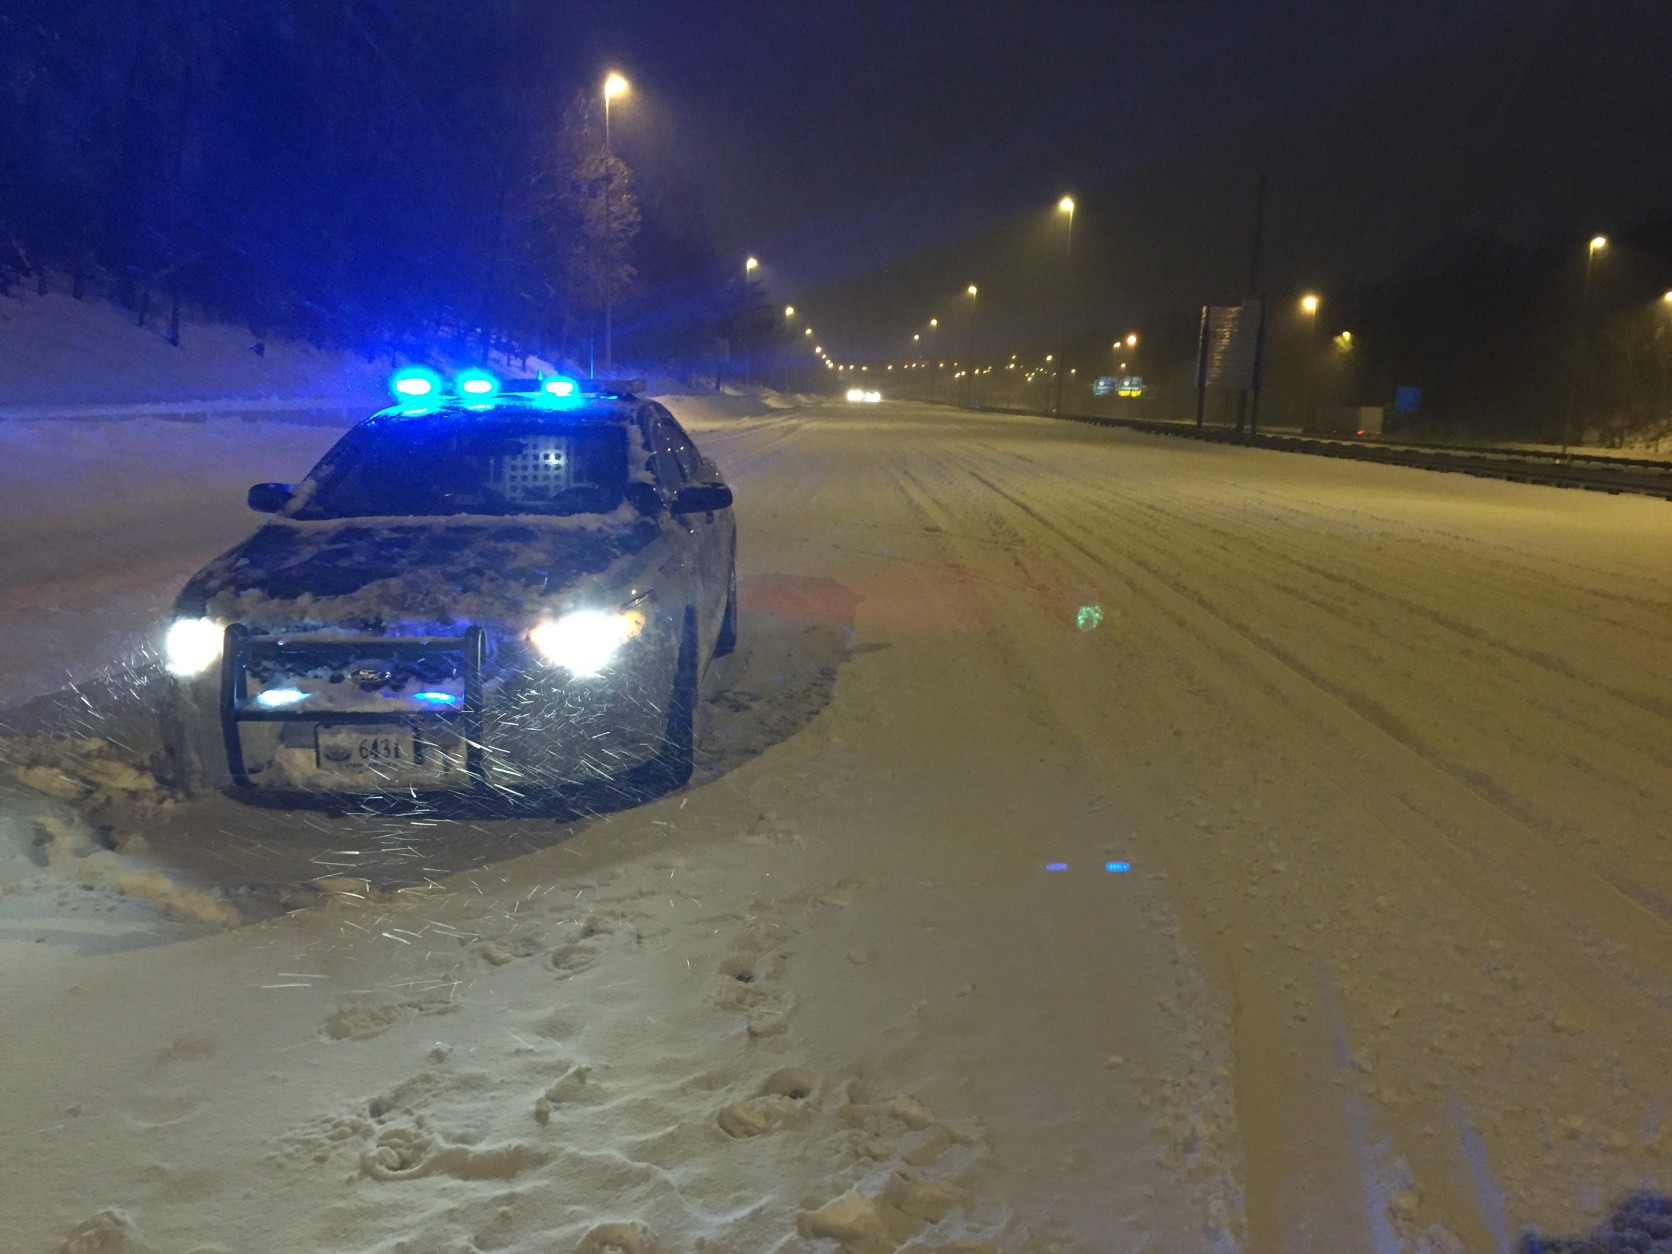 Virginia State Police on Interstate 95 in Prince William County overnight Friday into Saturday with VDOT Safety Services Patrol. (Courtesy Virginia State Police)